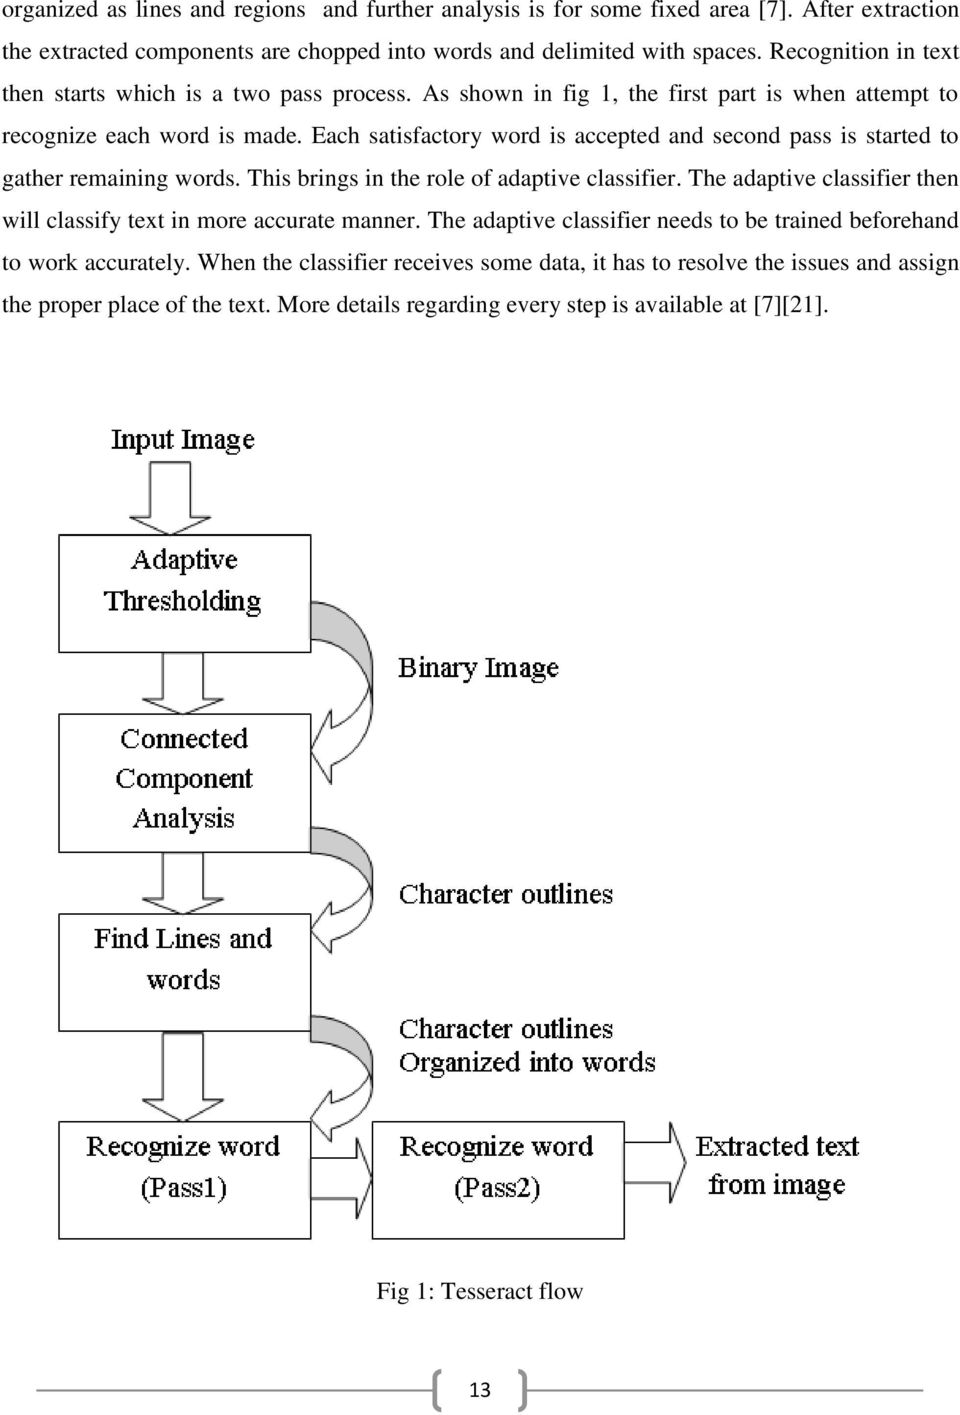 IMPROVING THE EFFICIENCY OF TESSERACT OCR ENGINE - PDF